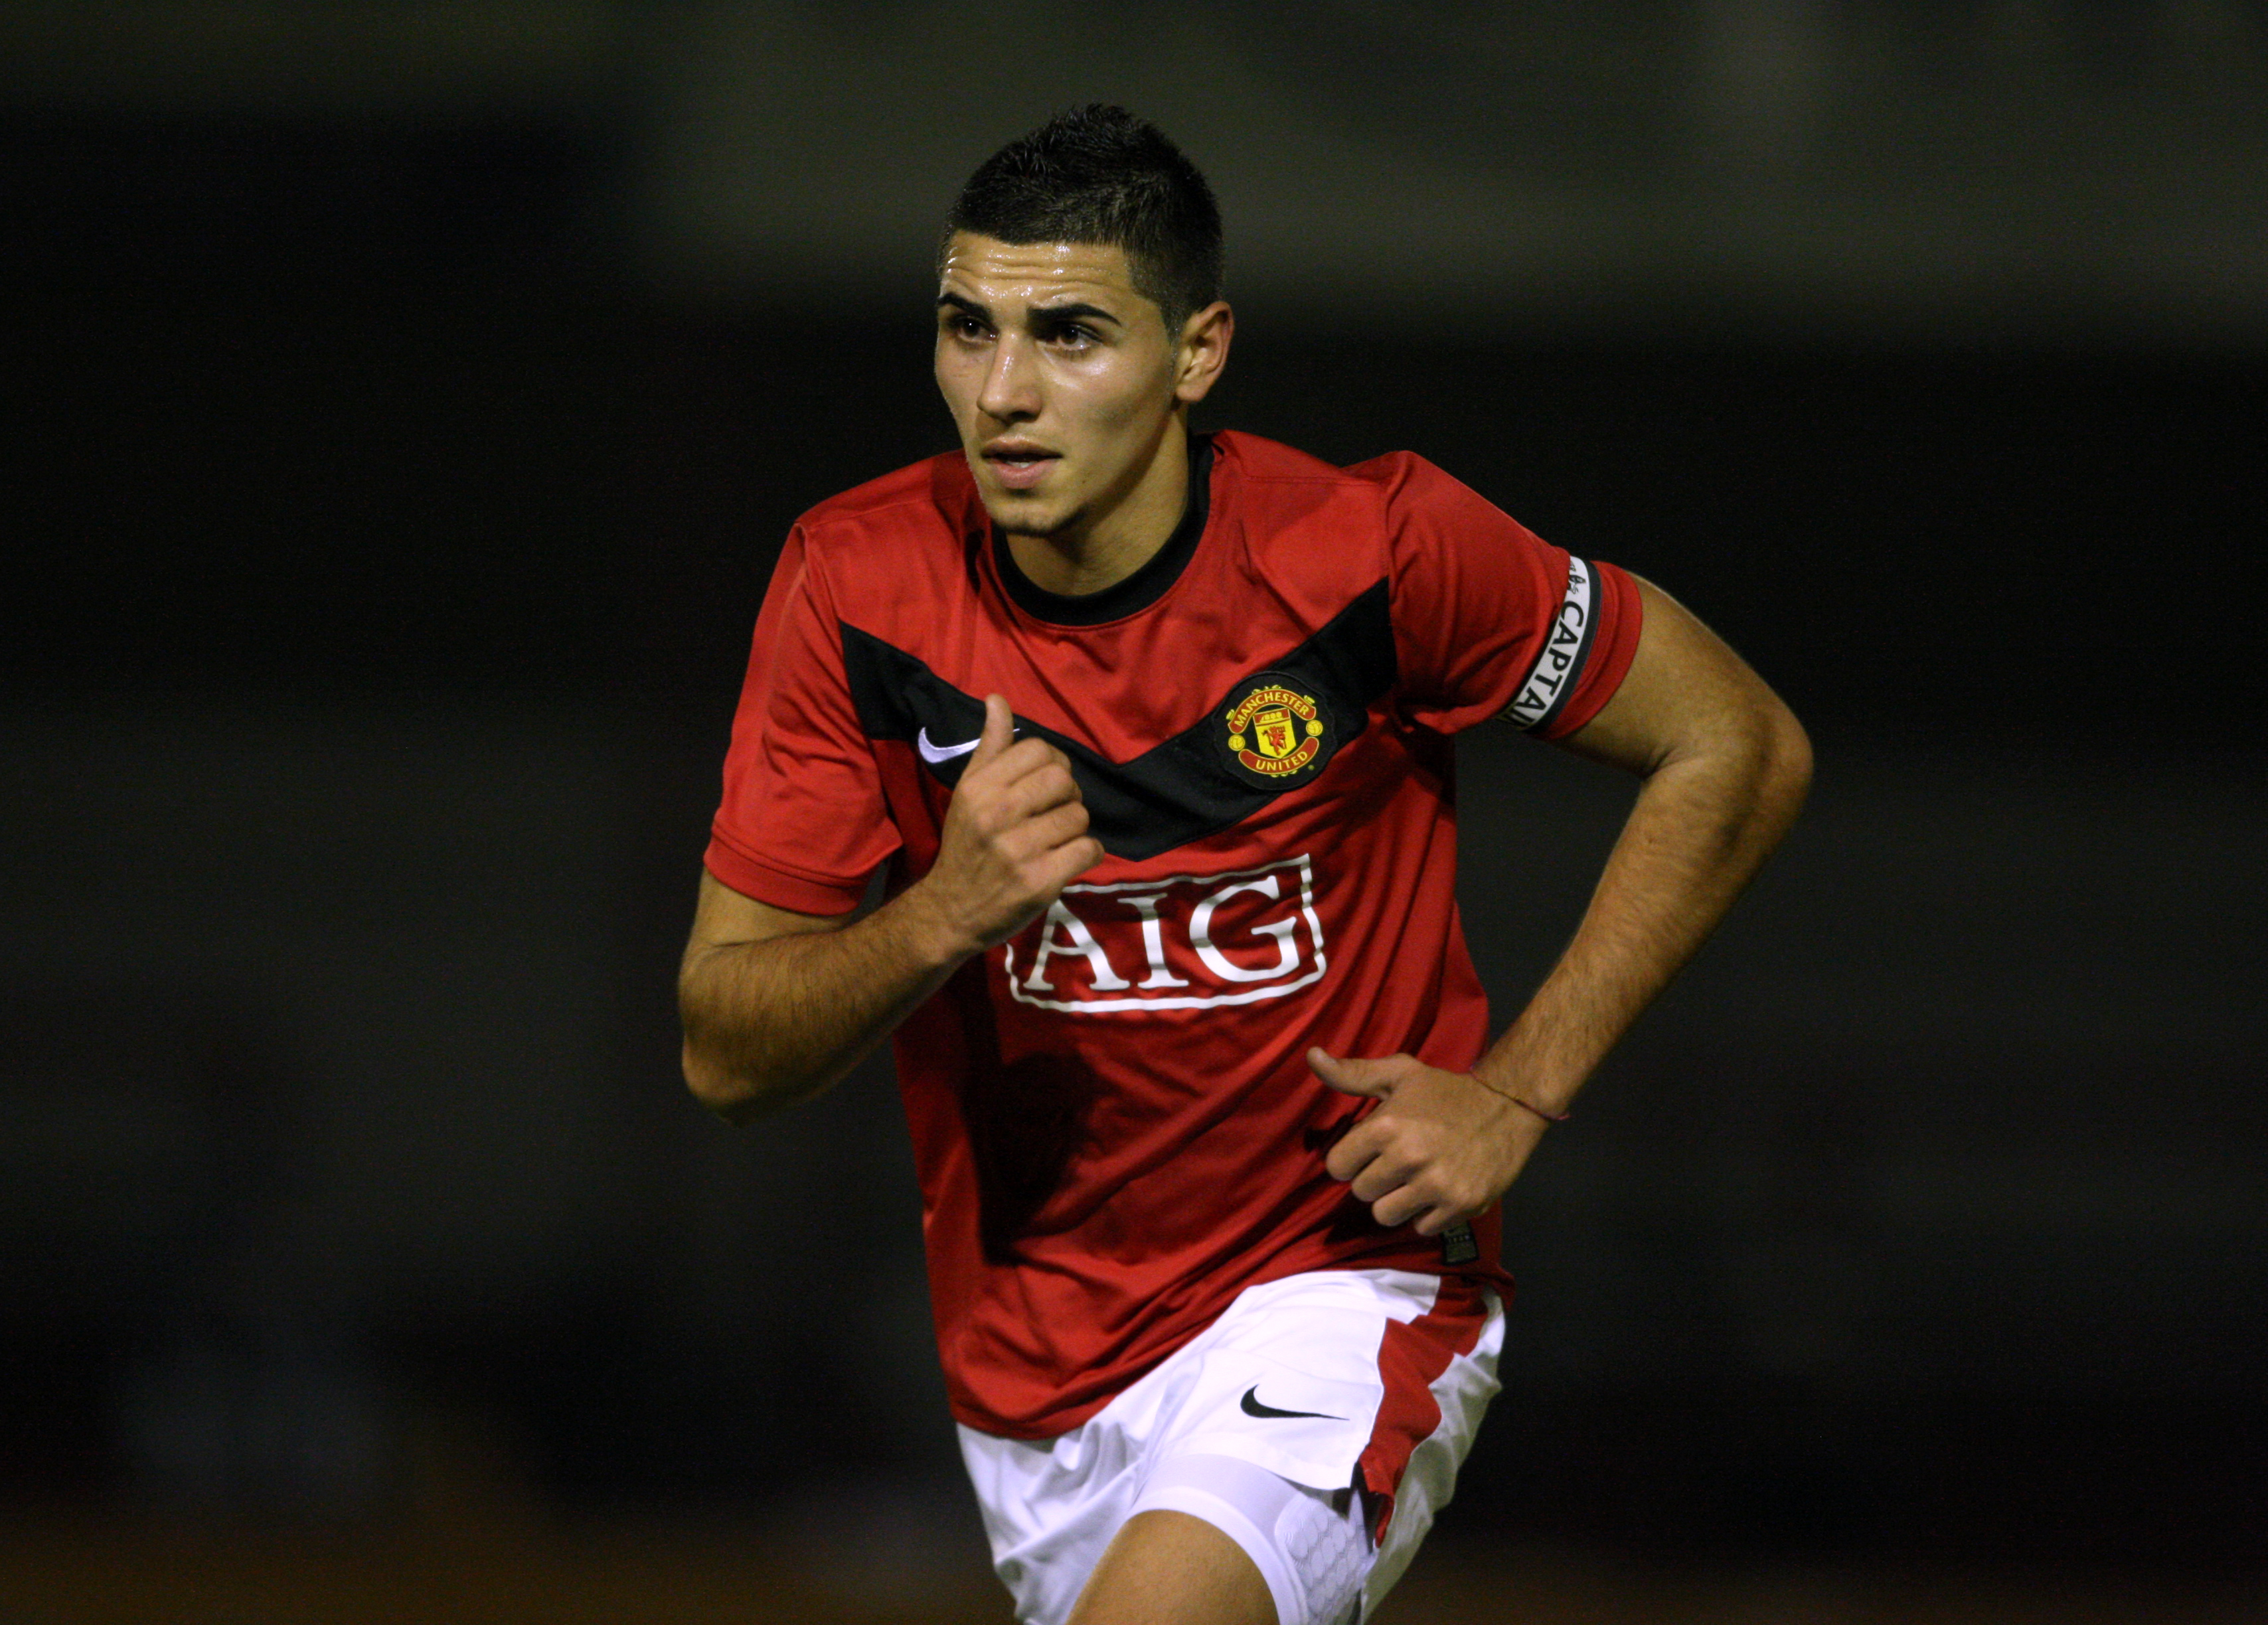 Soccer - FA Youth Cup - Third Round - Manchester United v Birmingham City - Moss Lane